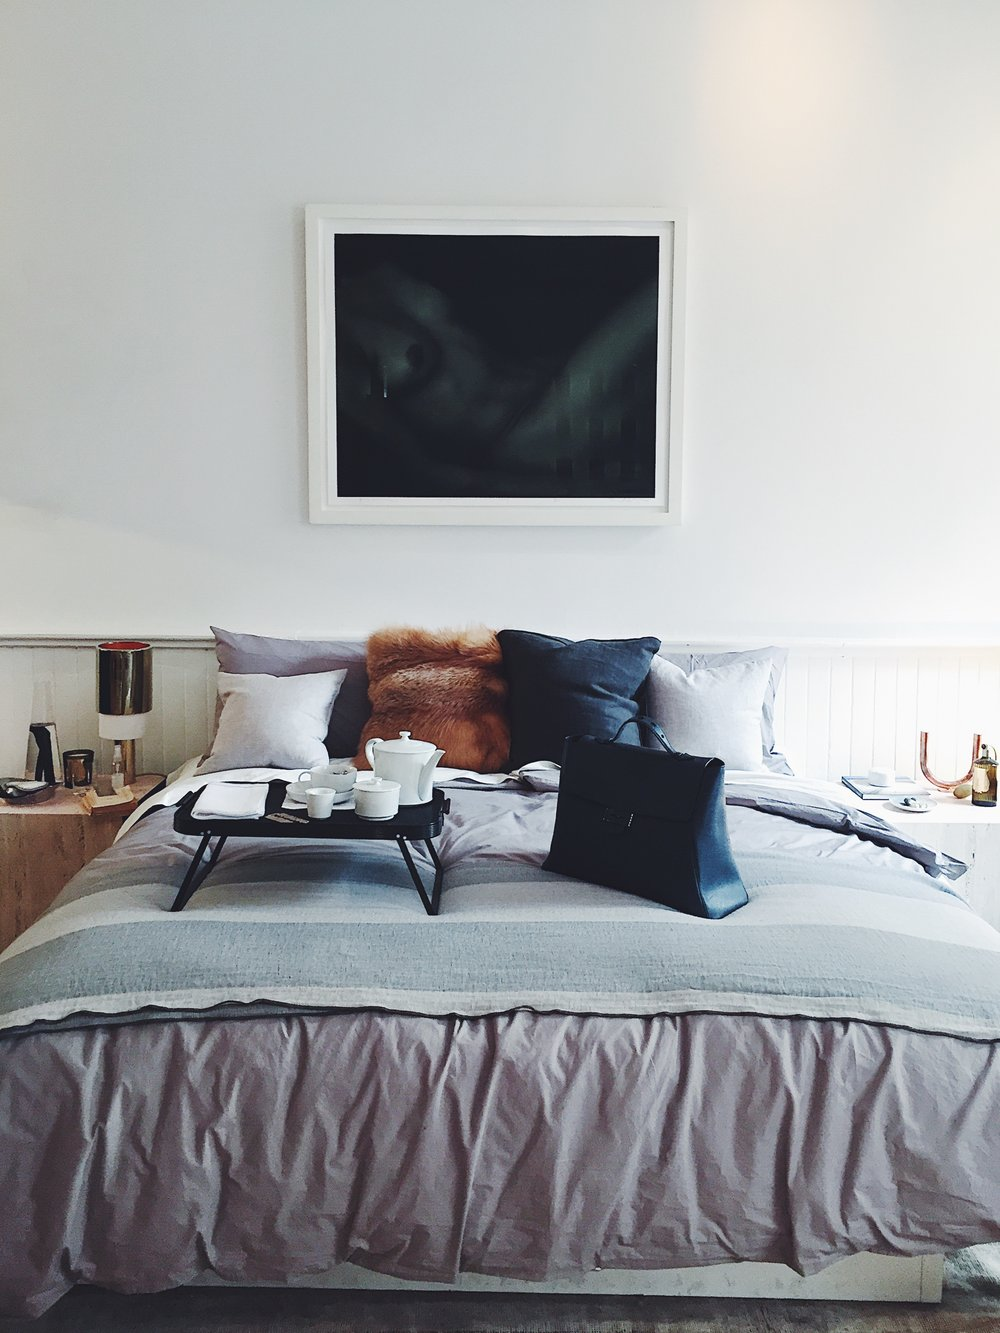 renap_theline_bedroom